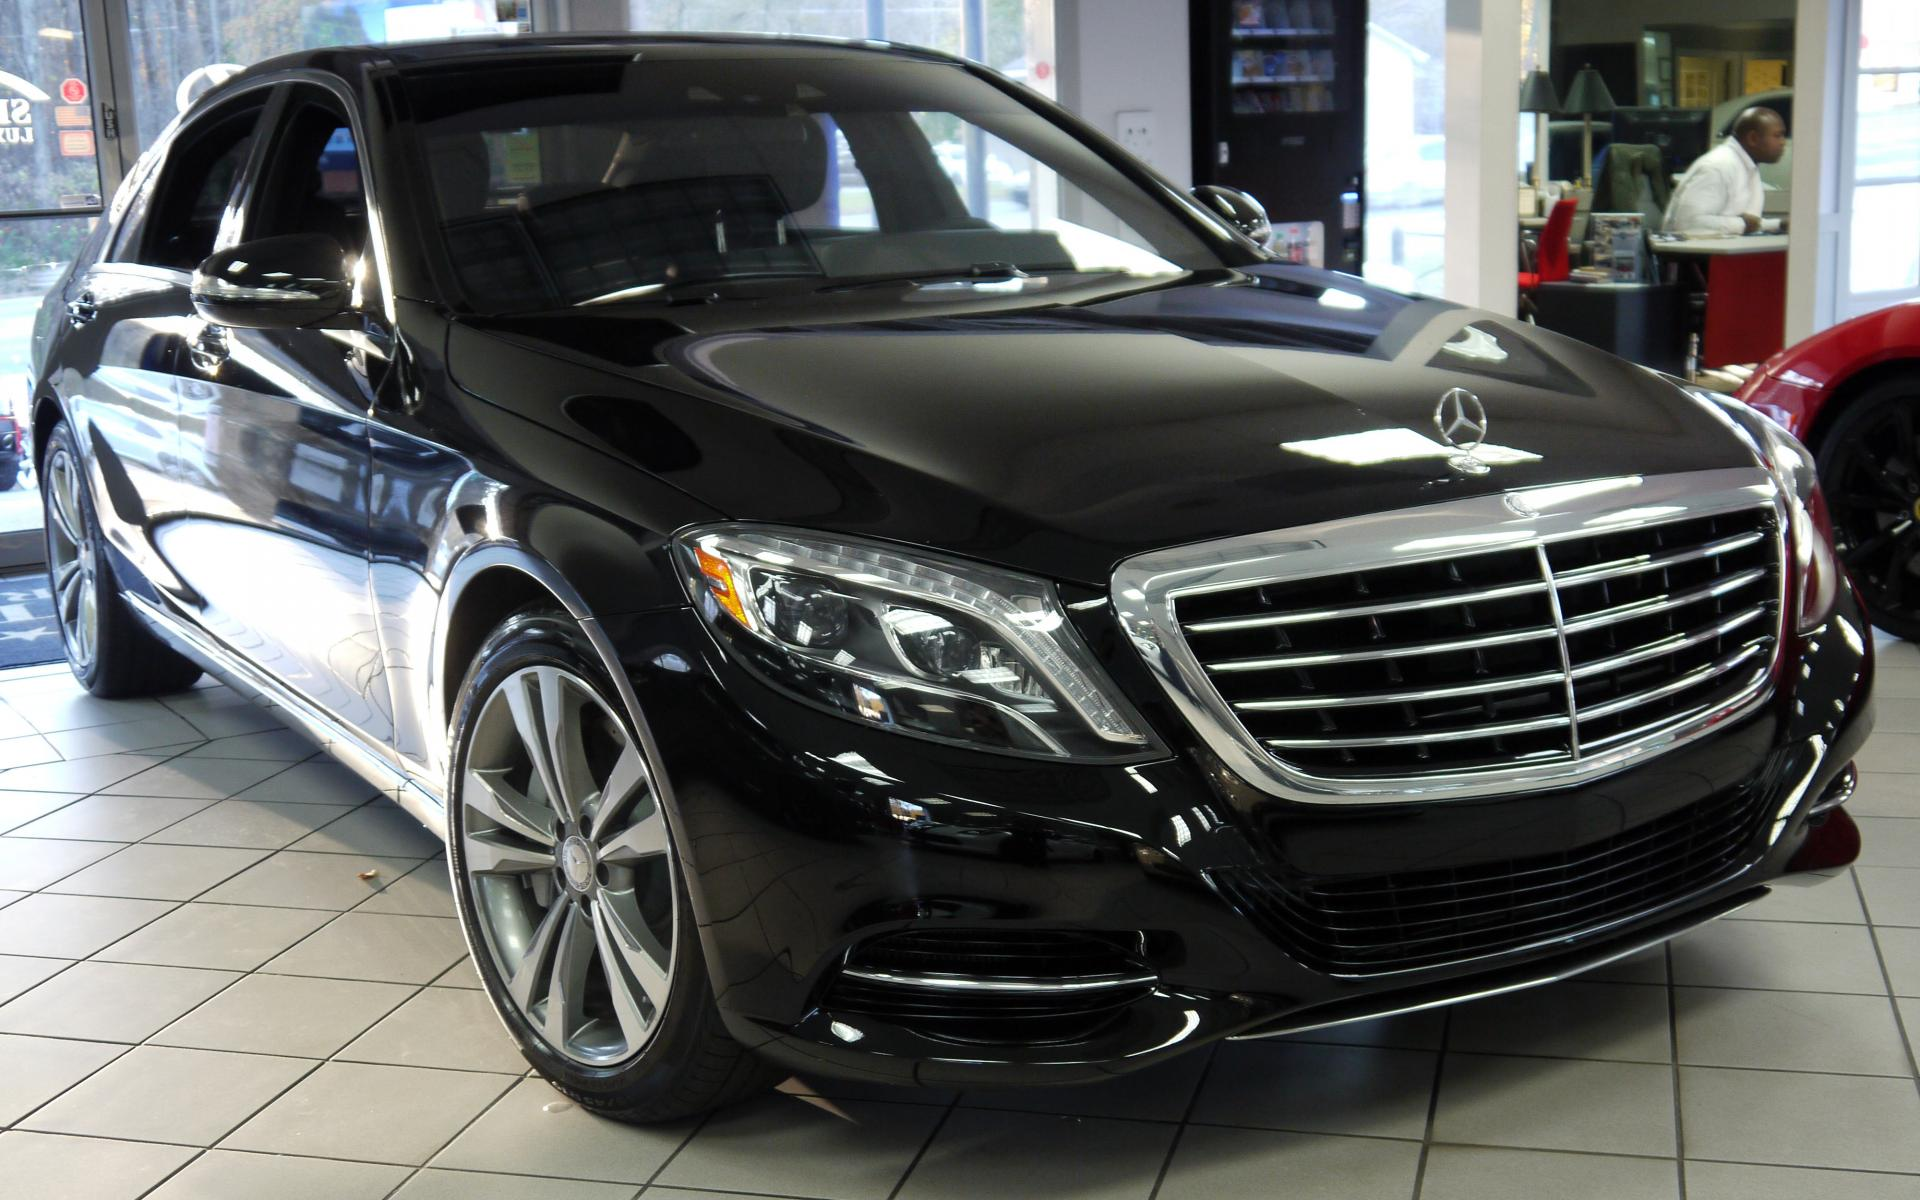 Mercedes Benz Sugarland Service >> Mercedes S550 | Car Service Houston - Town Car Service ...